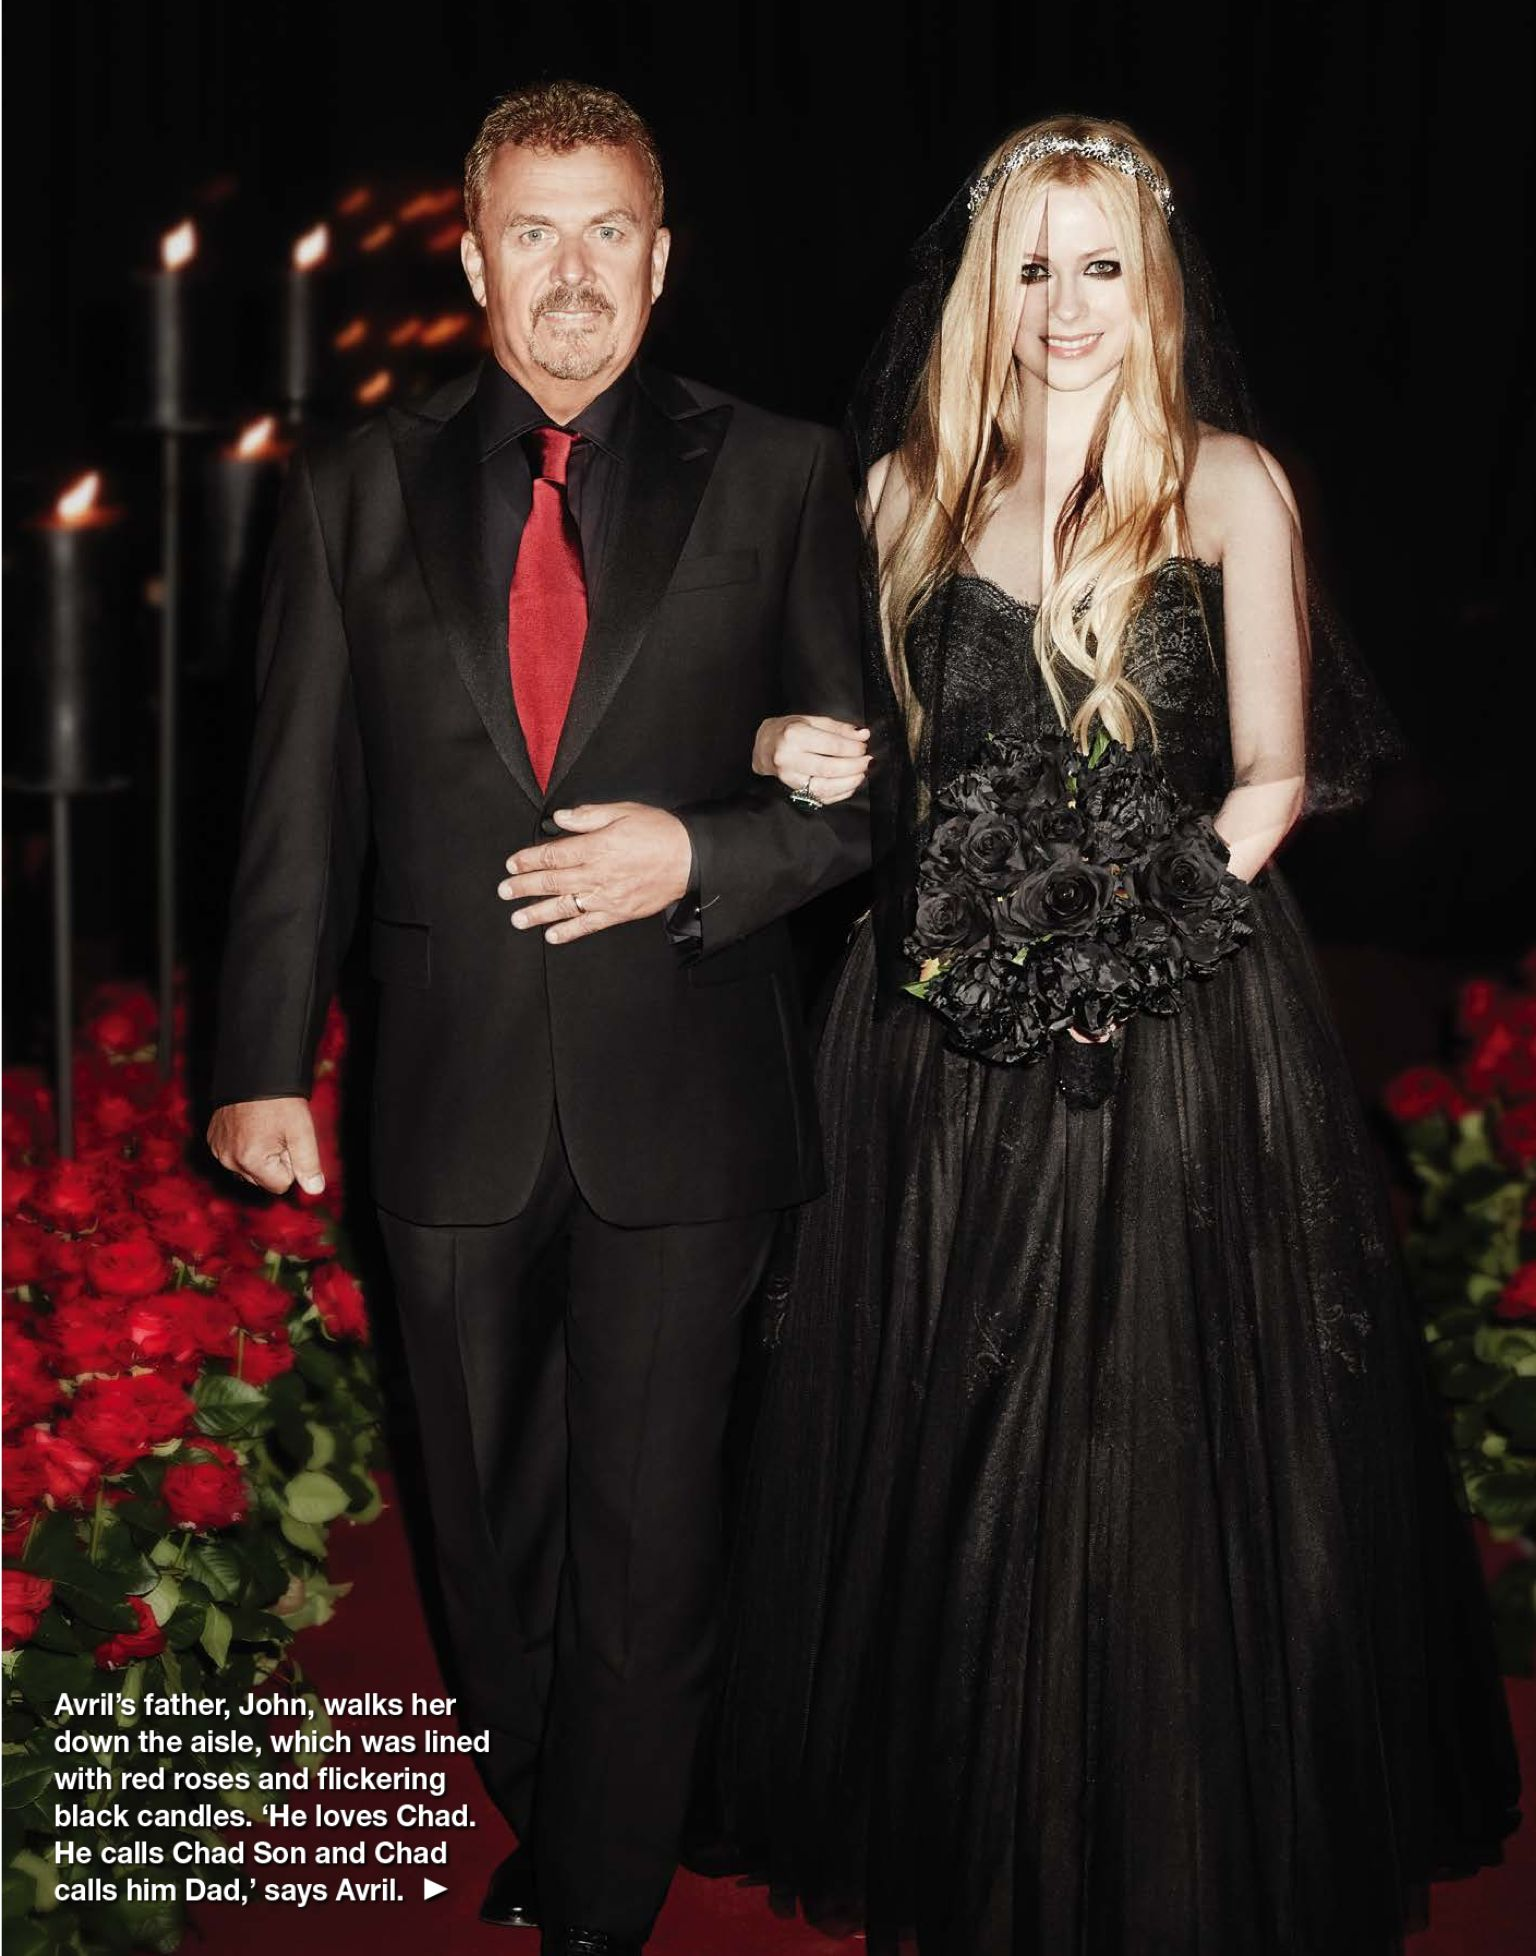 Black Wedding Avril And Her Father 1536 1956 Black Wedding Dresses Black Wedding Gowns Black Wedding